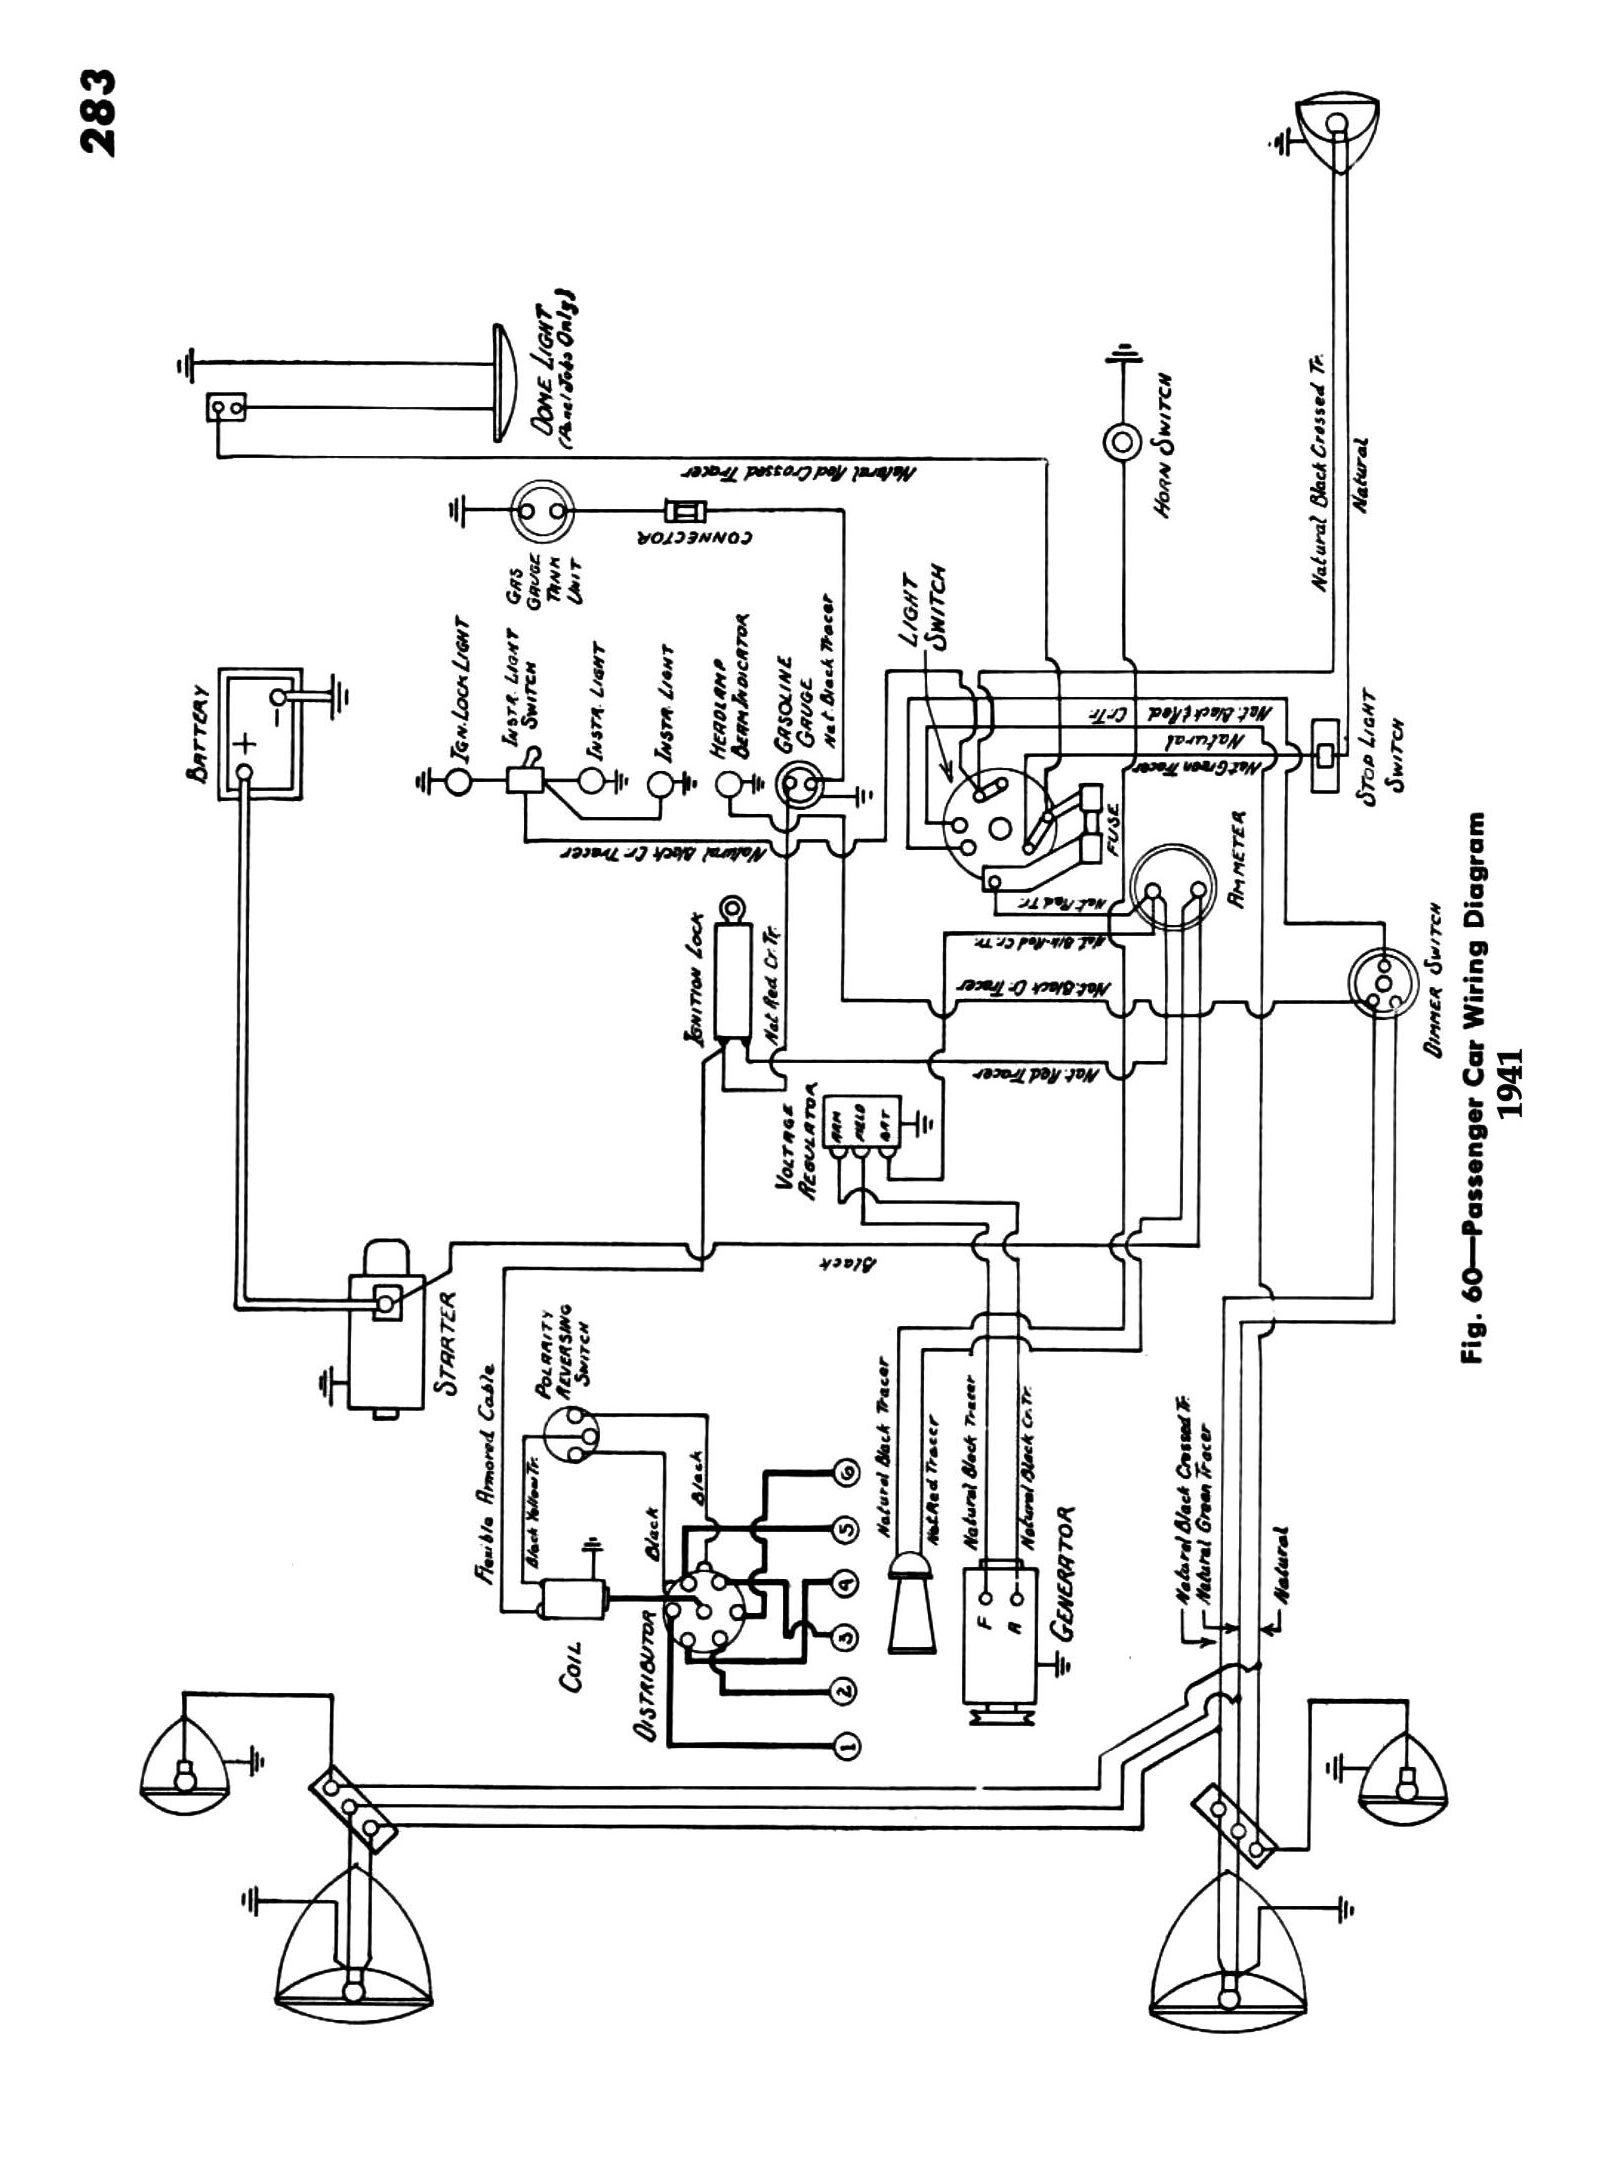 2004 chevy impala ignition wiring diagram wiring diagram